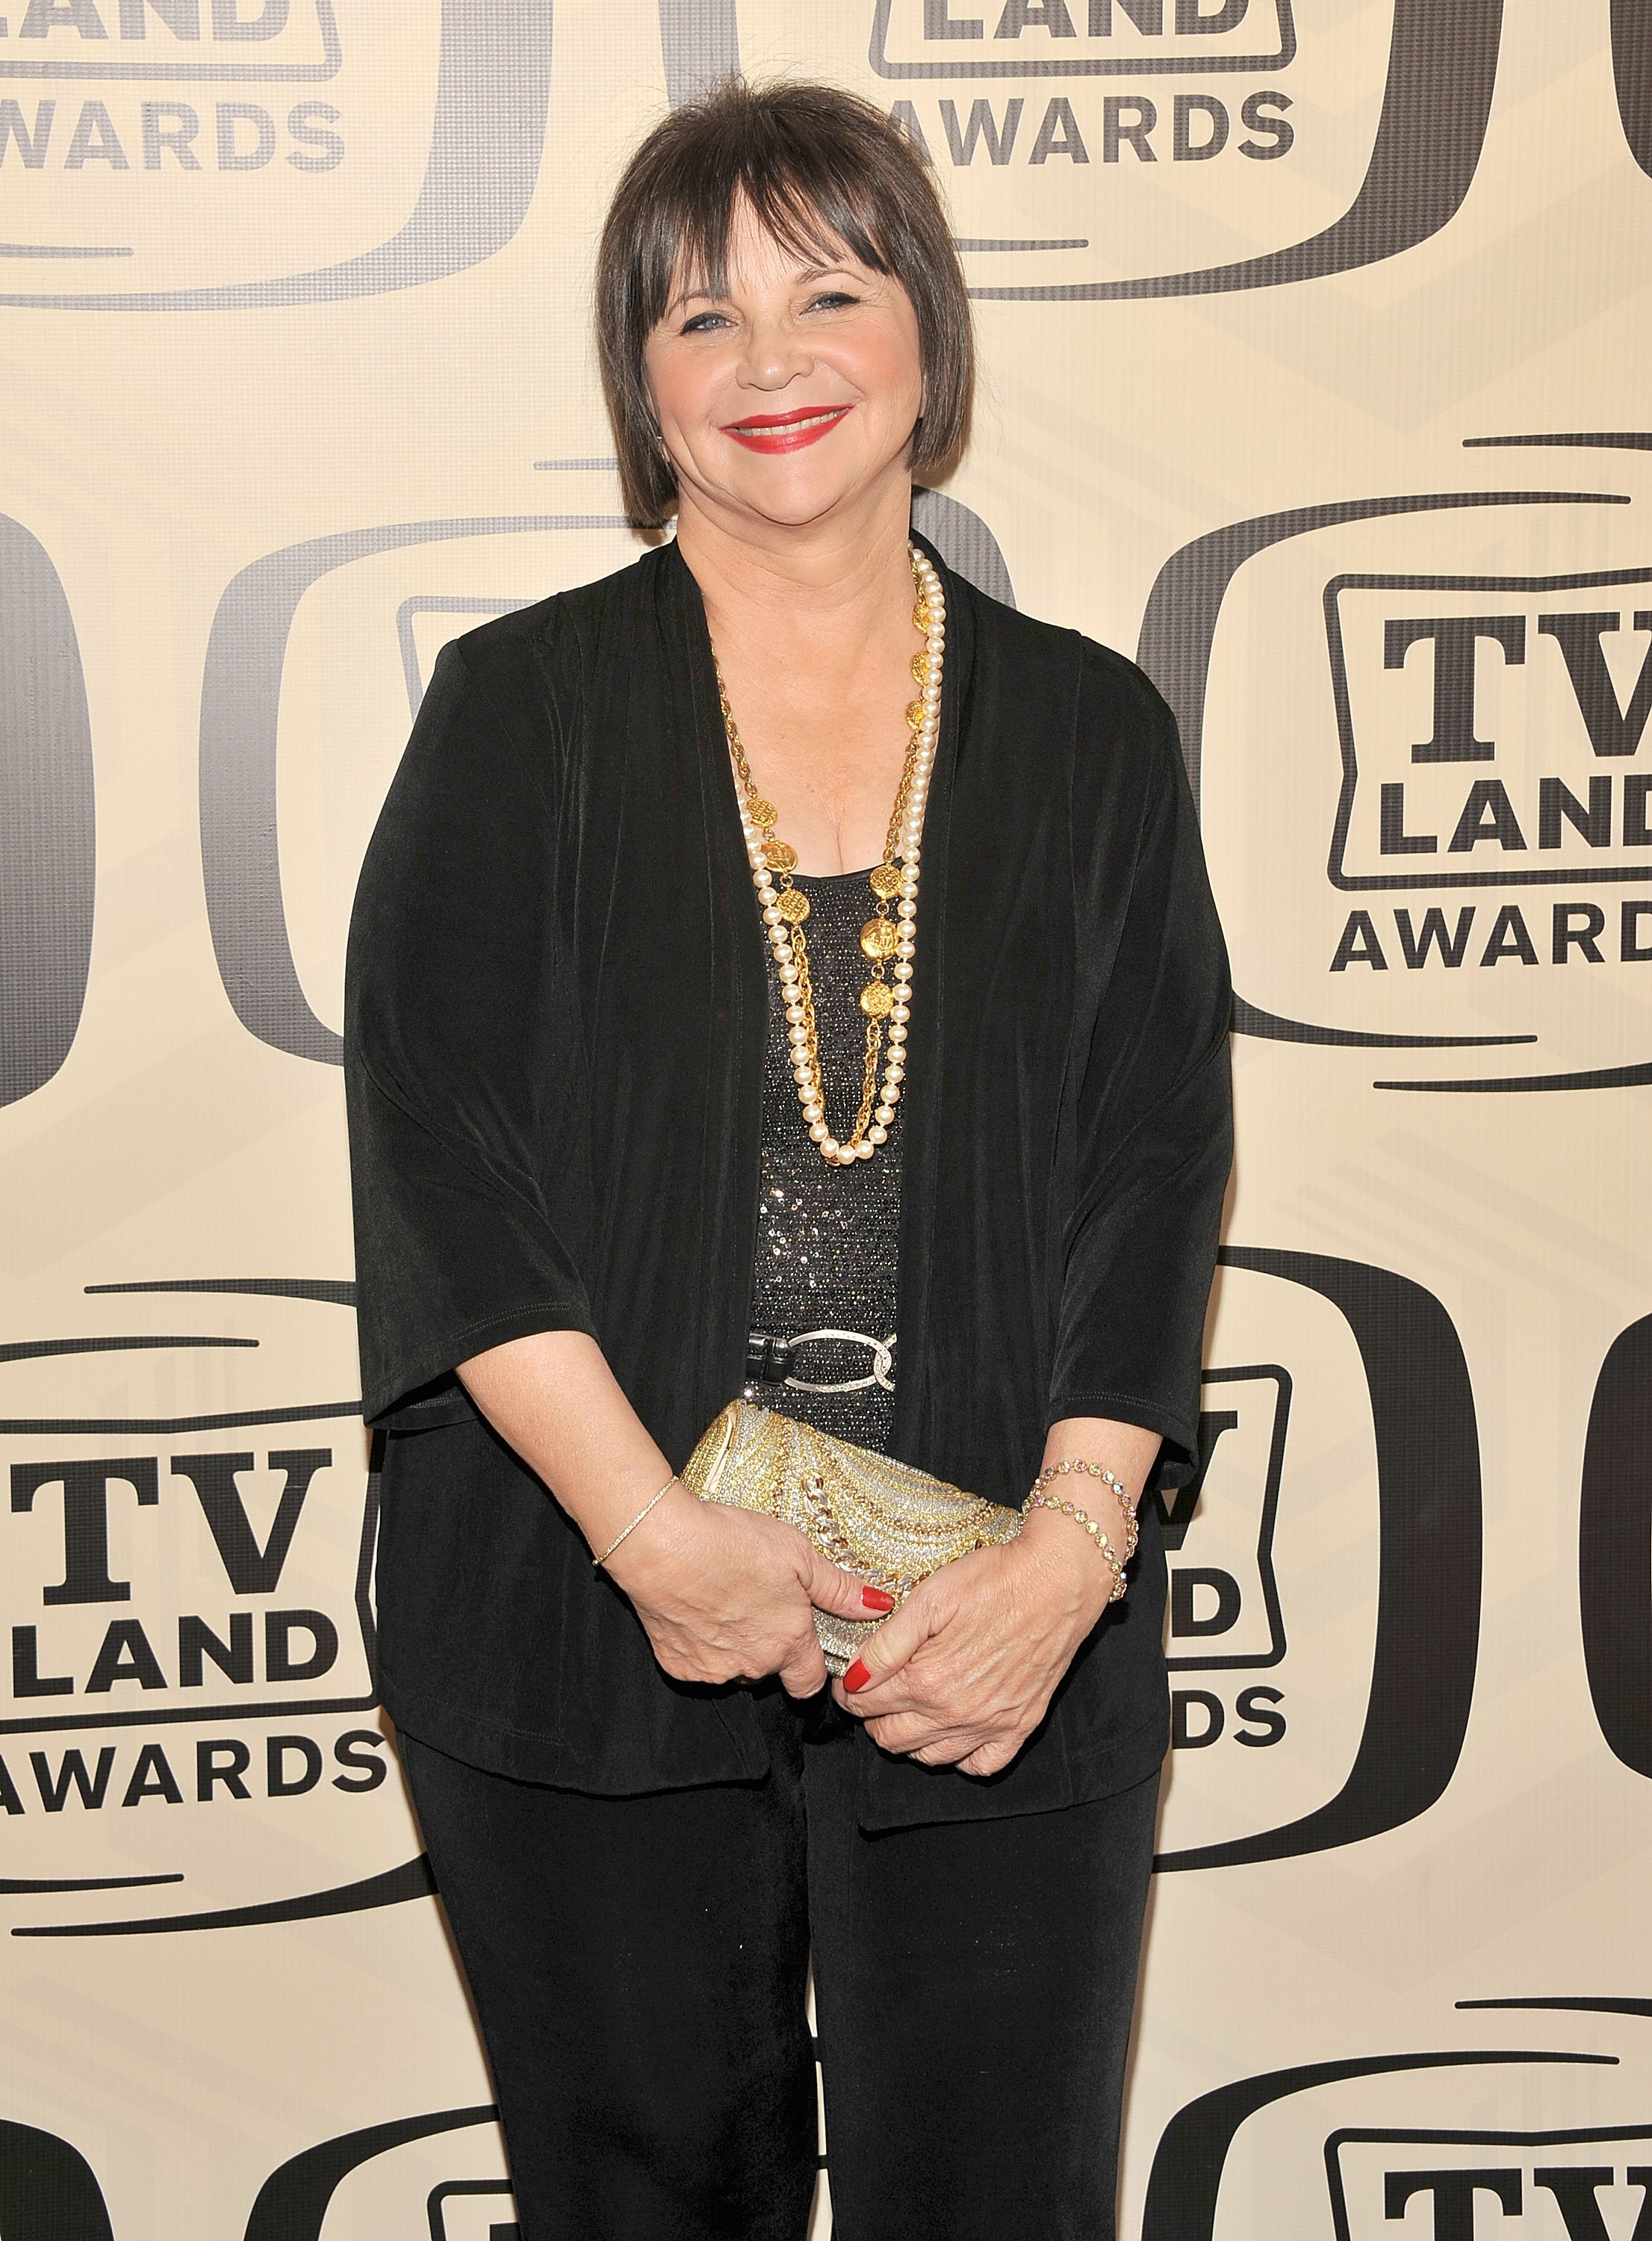 Cindy Williams attends the TV Land Awards in New York City on April 14, 2012 | Photo: Getty Images